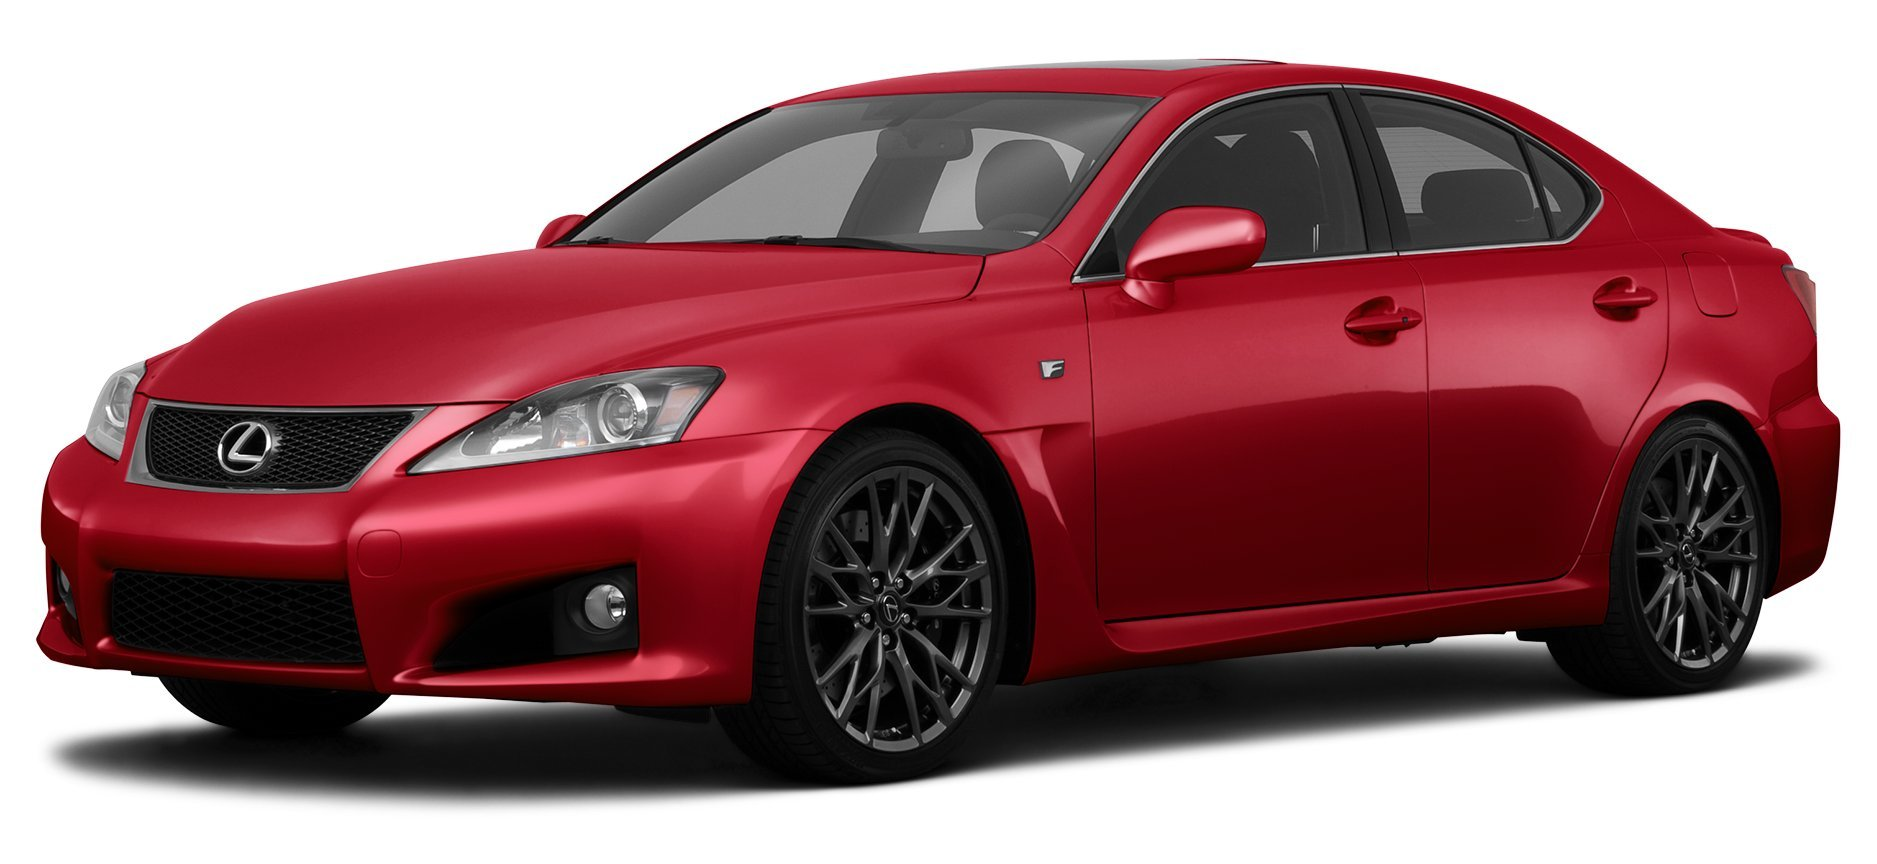 2011 Lexus IS F, 4 Door Sedan ...